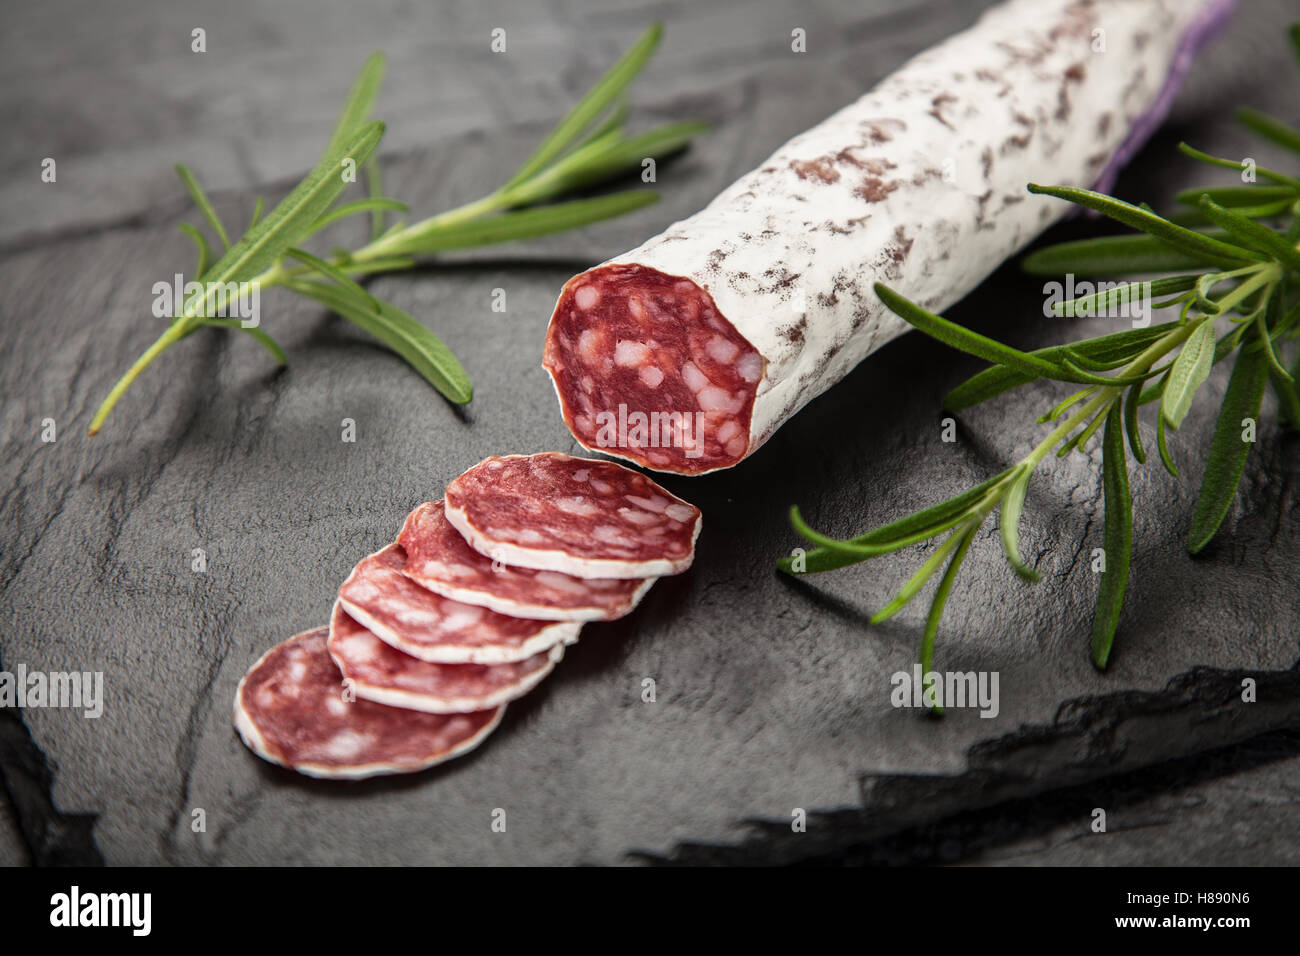 Salami on dark background - Stock Image